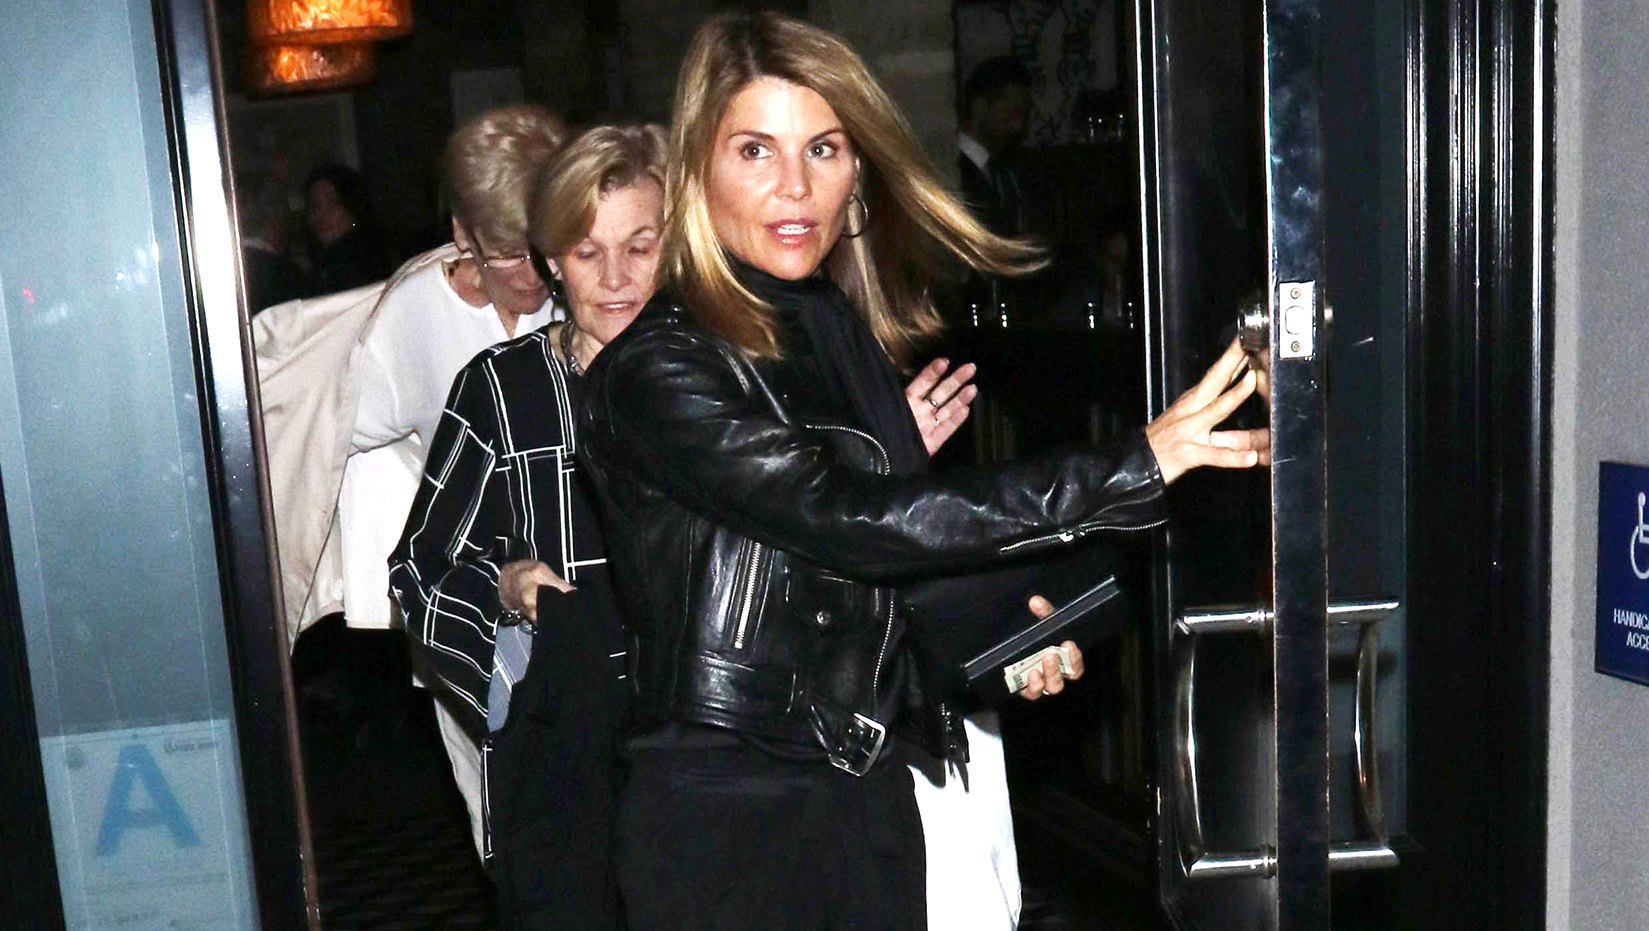 Lori Loughlin's Friends 'Want to Distance Themselves' From Her Amid College Admissions Scam Aftermath